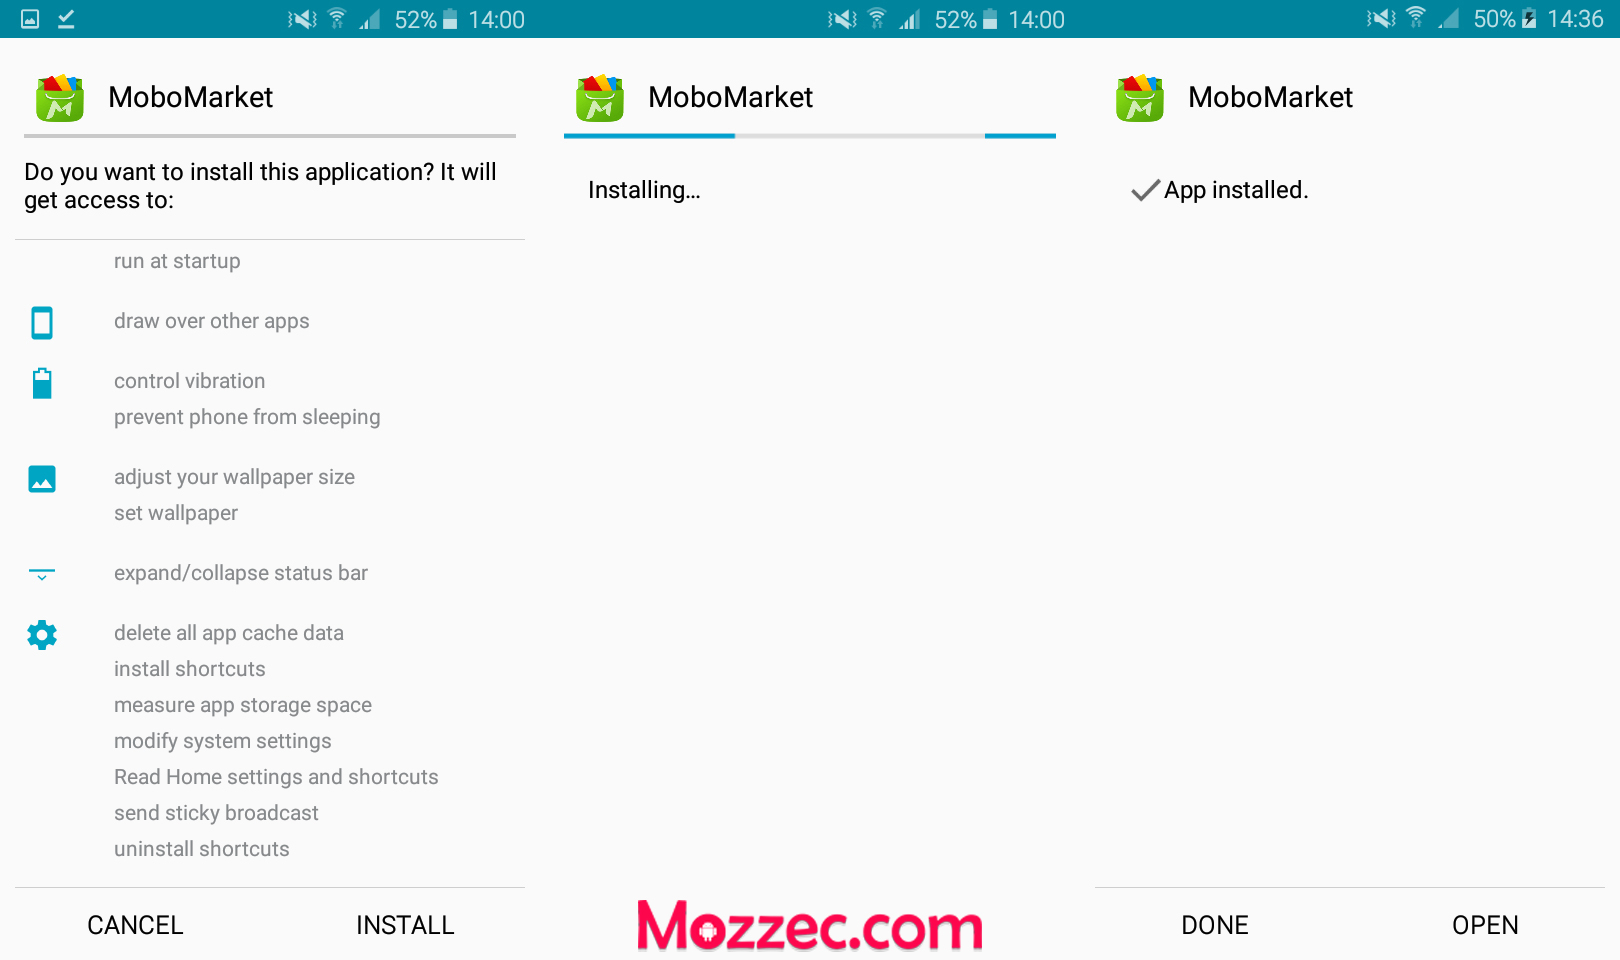 mobomarket android